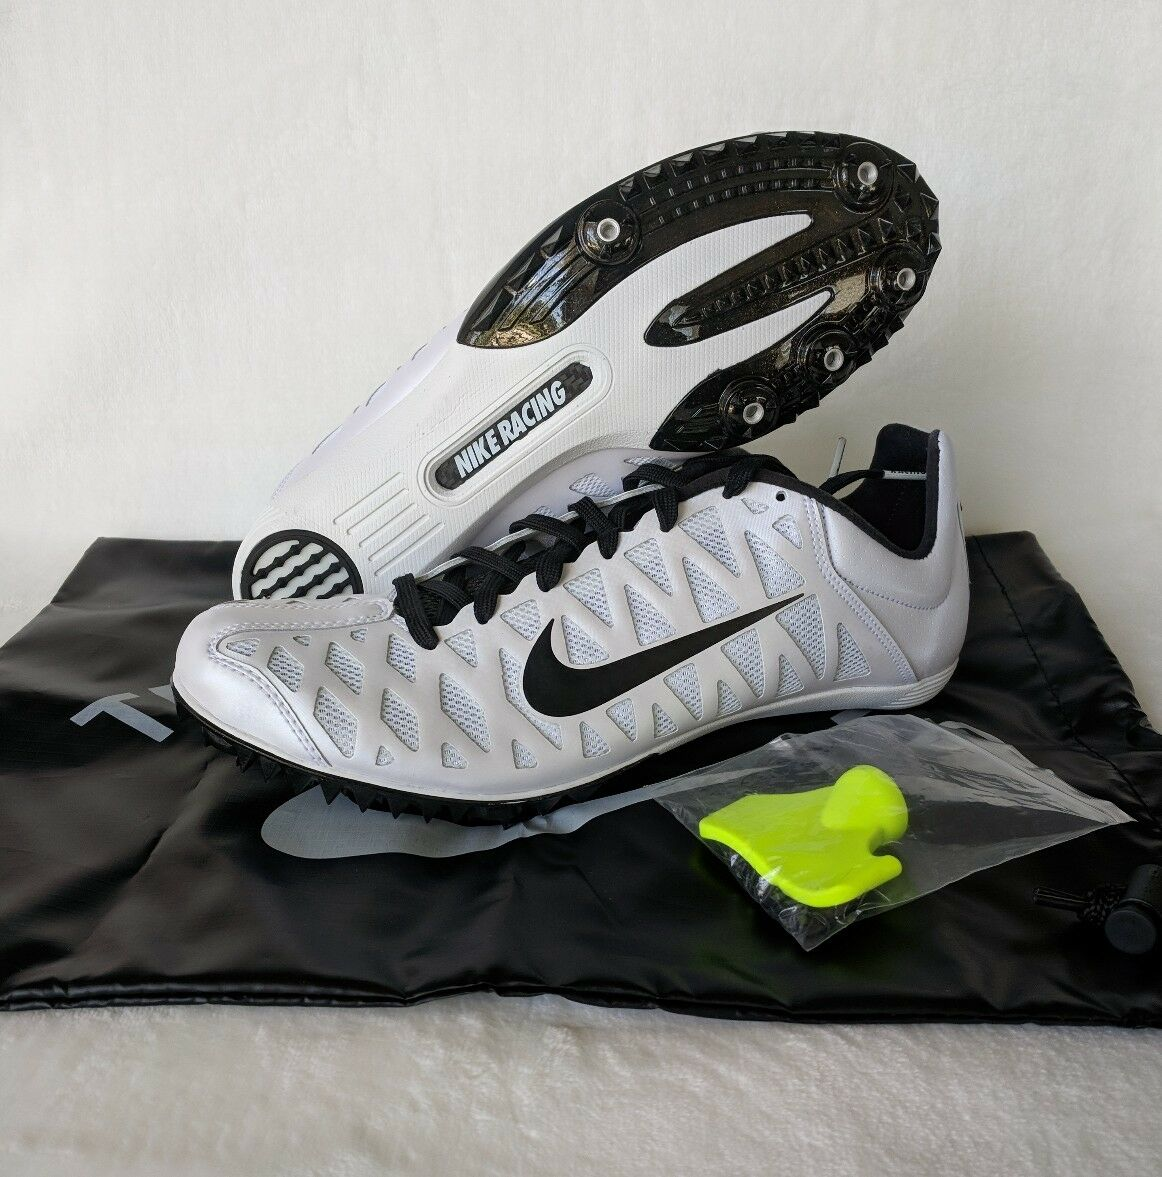 Nike Zoom Maxcat 4 Track Shoes Running Spikes White Black 549150-107 Sz 11.5